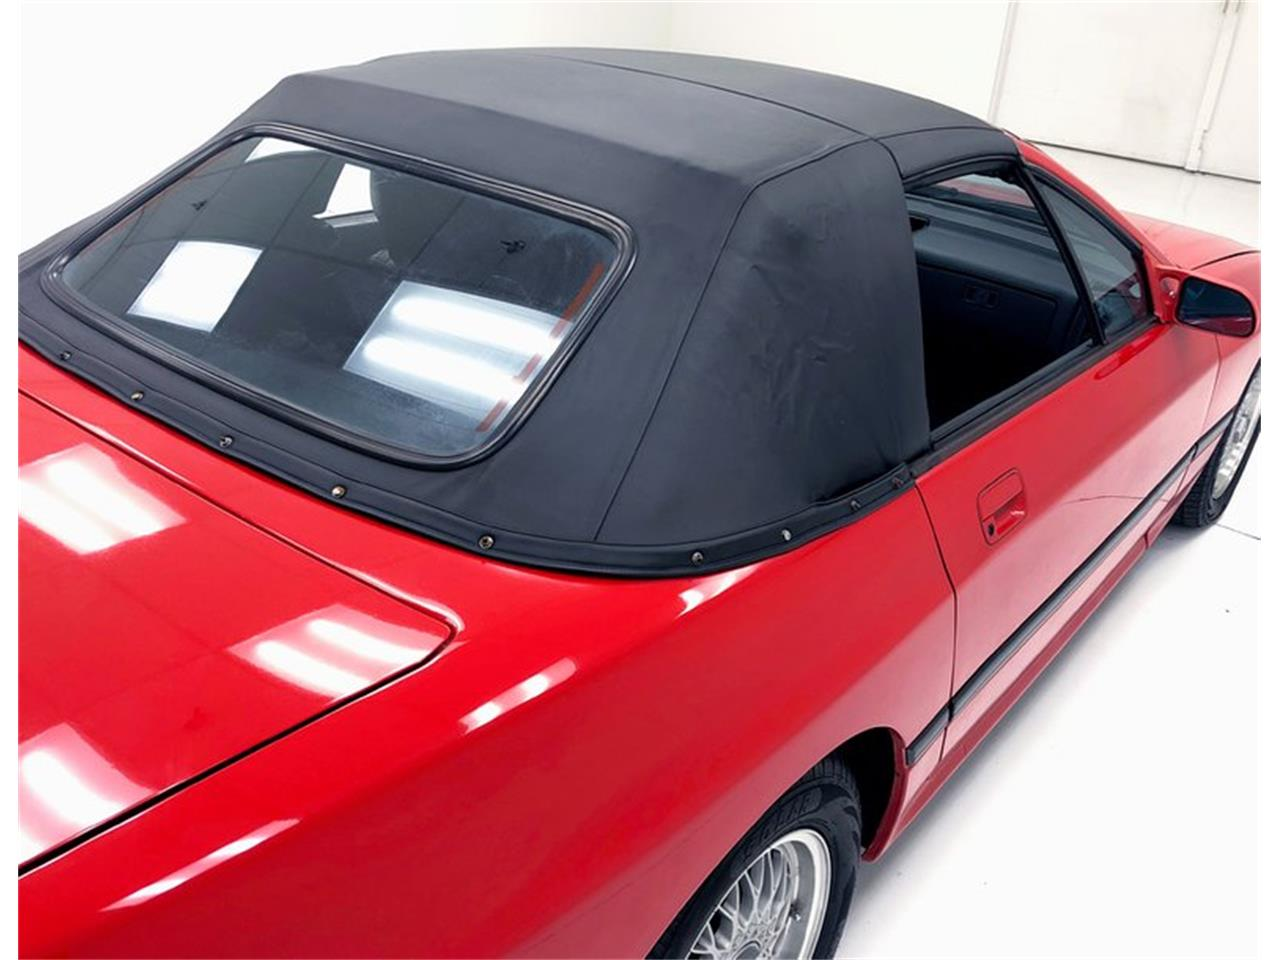 Large Picture of '88 Mazda RX-7 - $9,400.00 - OTRD